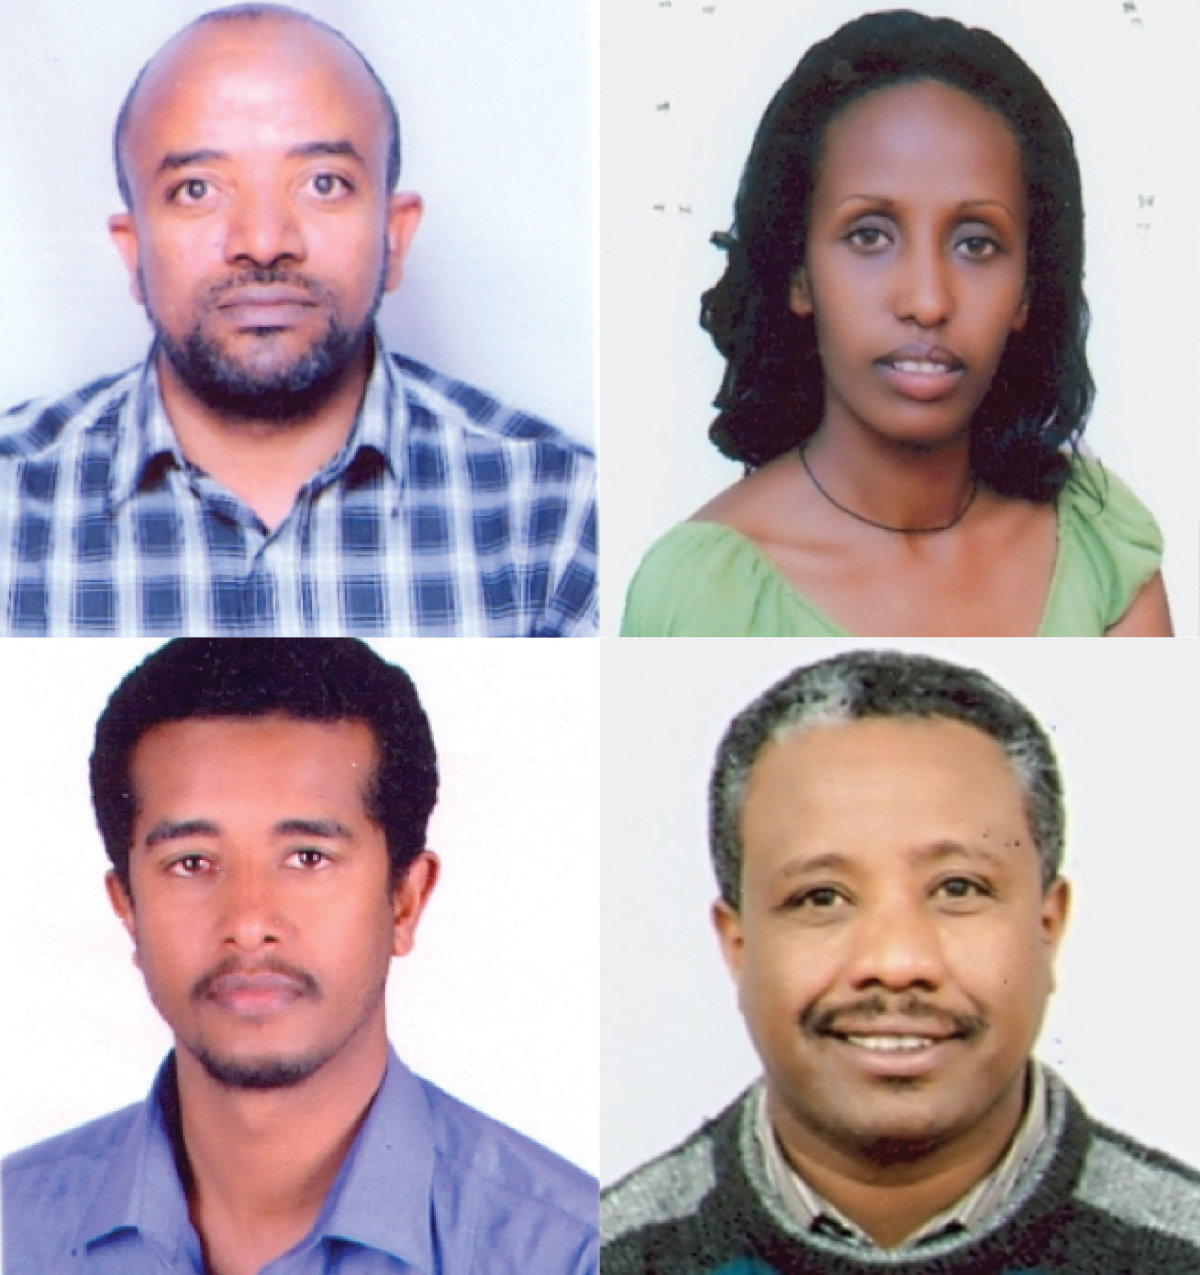 REST IN PEACE—Four Catholic Relief Services staff members on their way to a training session in Nairobi, Kenya, were among the passengers aboard an Ethiopian Airlines flight that crashed moments after takeoff in the east African nation. Pictured in this composite photo are Sintayehu Aymeku, Sara Chalachew, Mulusew Alemu and Getnet Alemayehu.